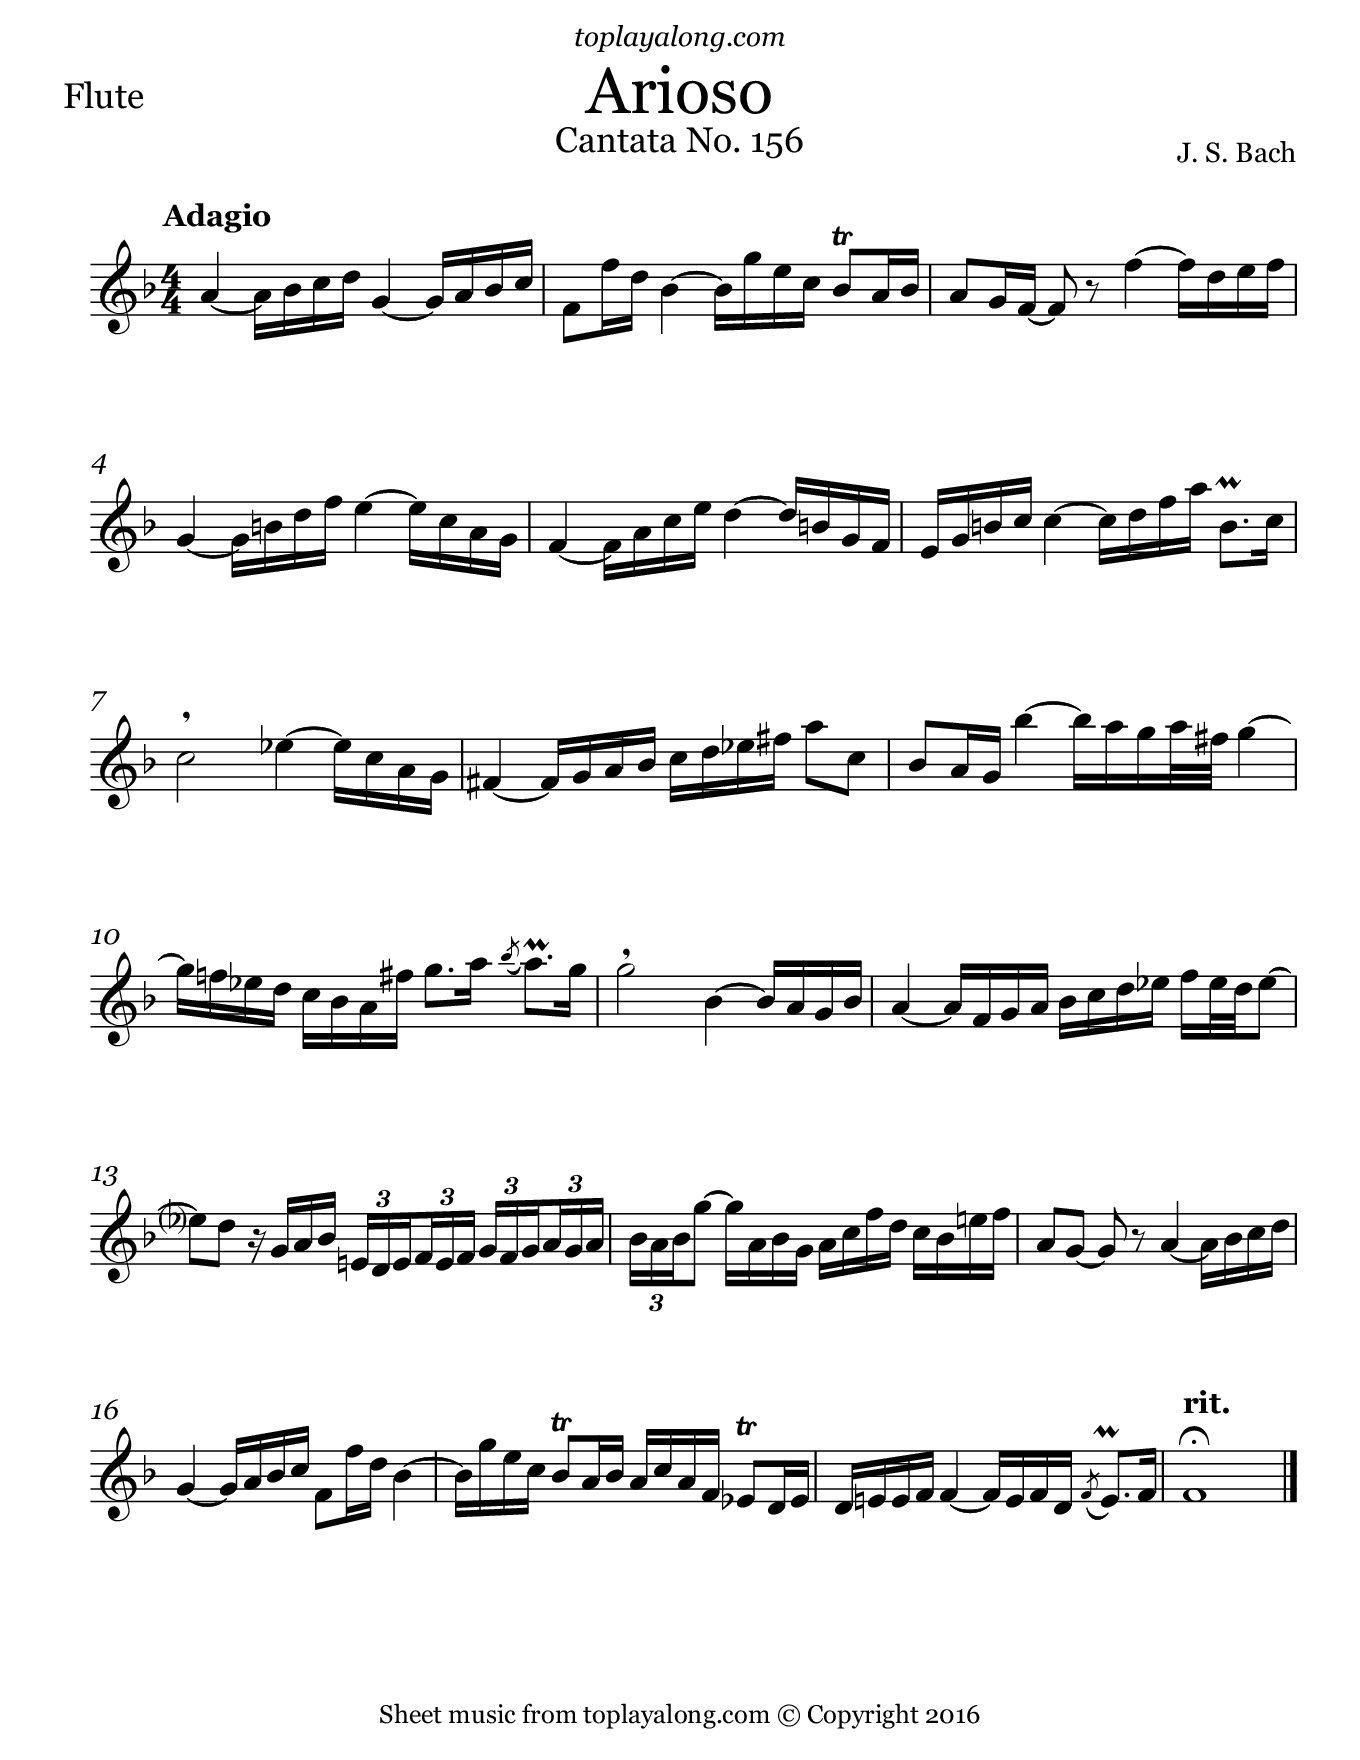 Arioso from Cantata BWV 156 by J. S. Bach. Sheet music for Flute, page 1.